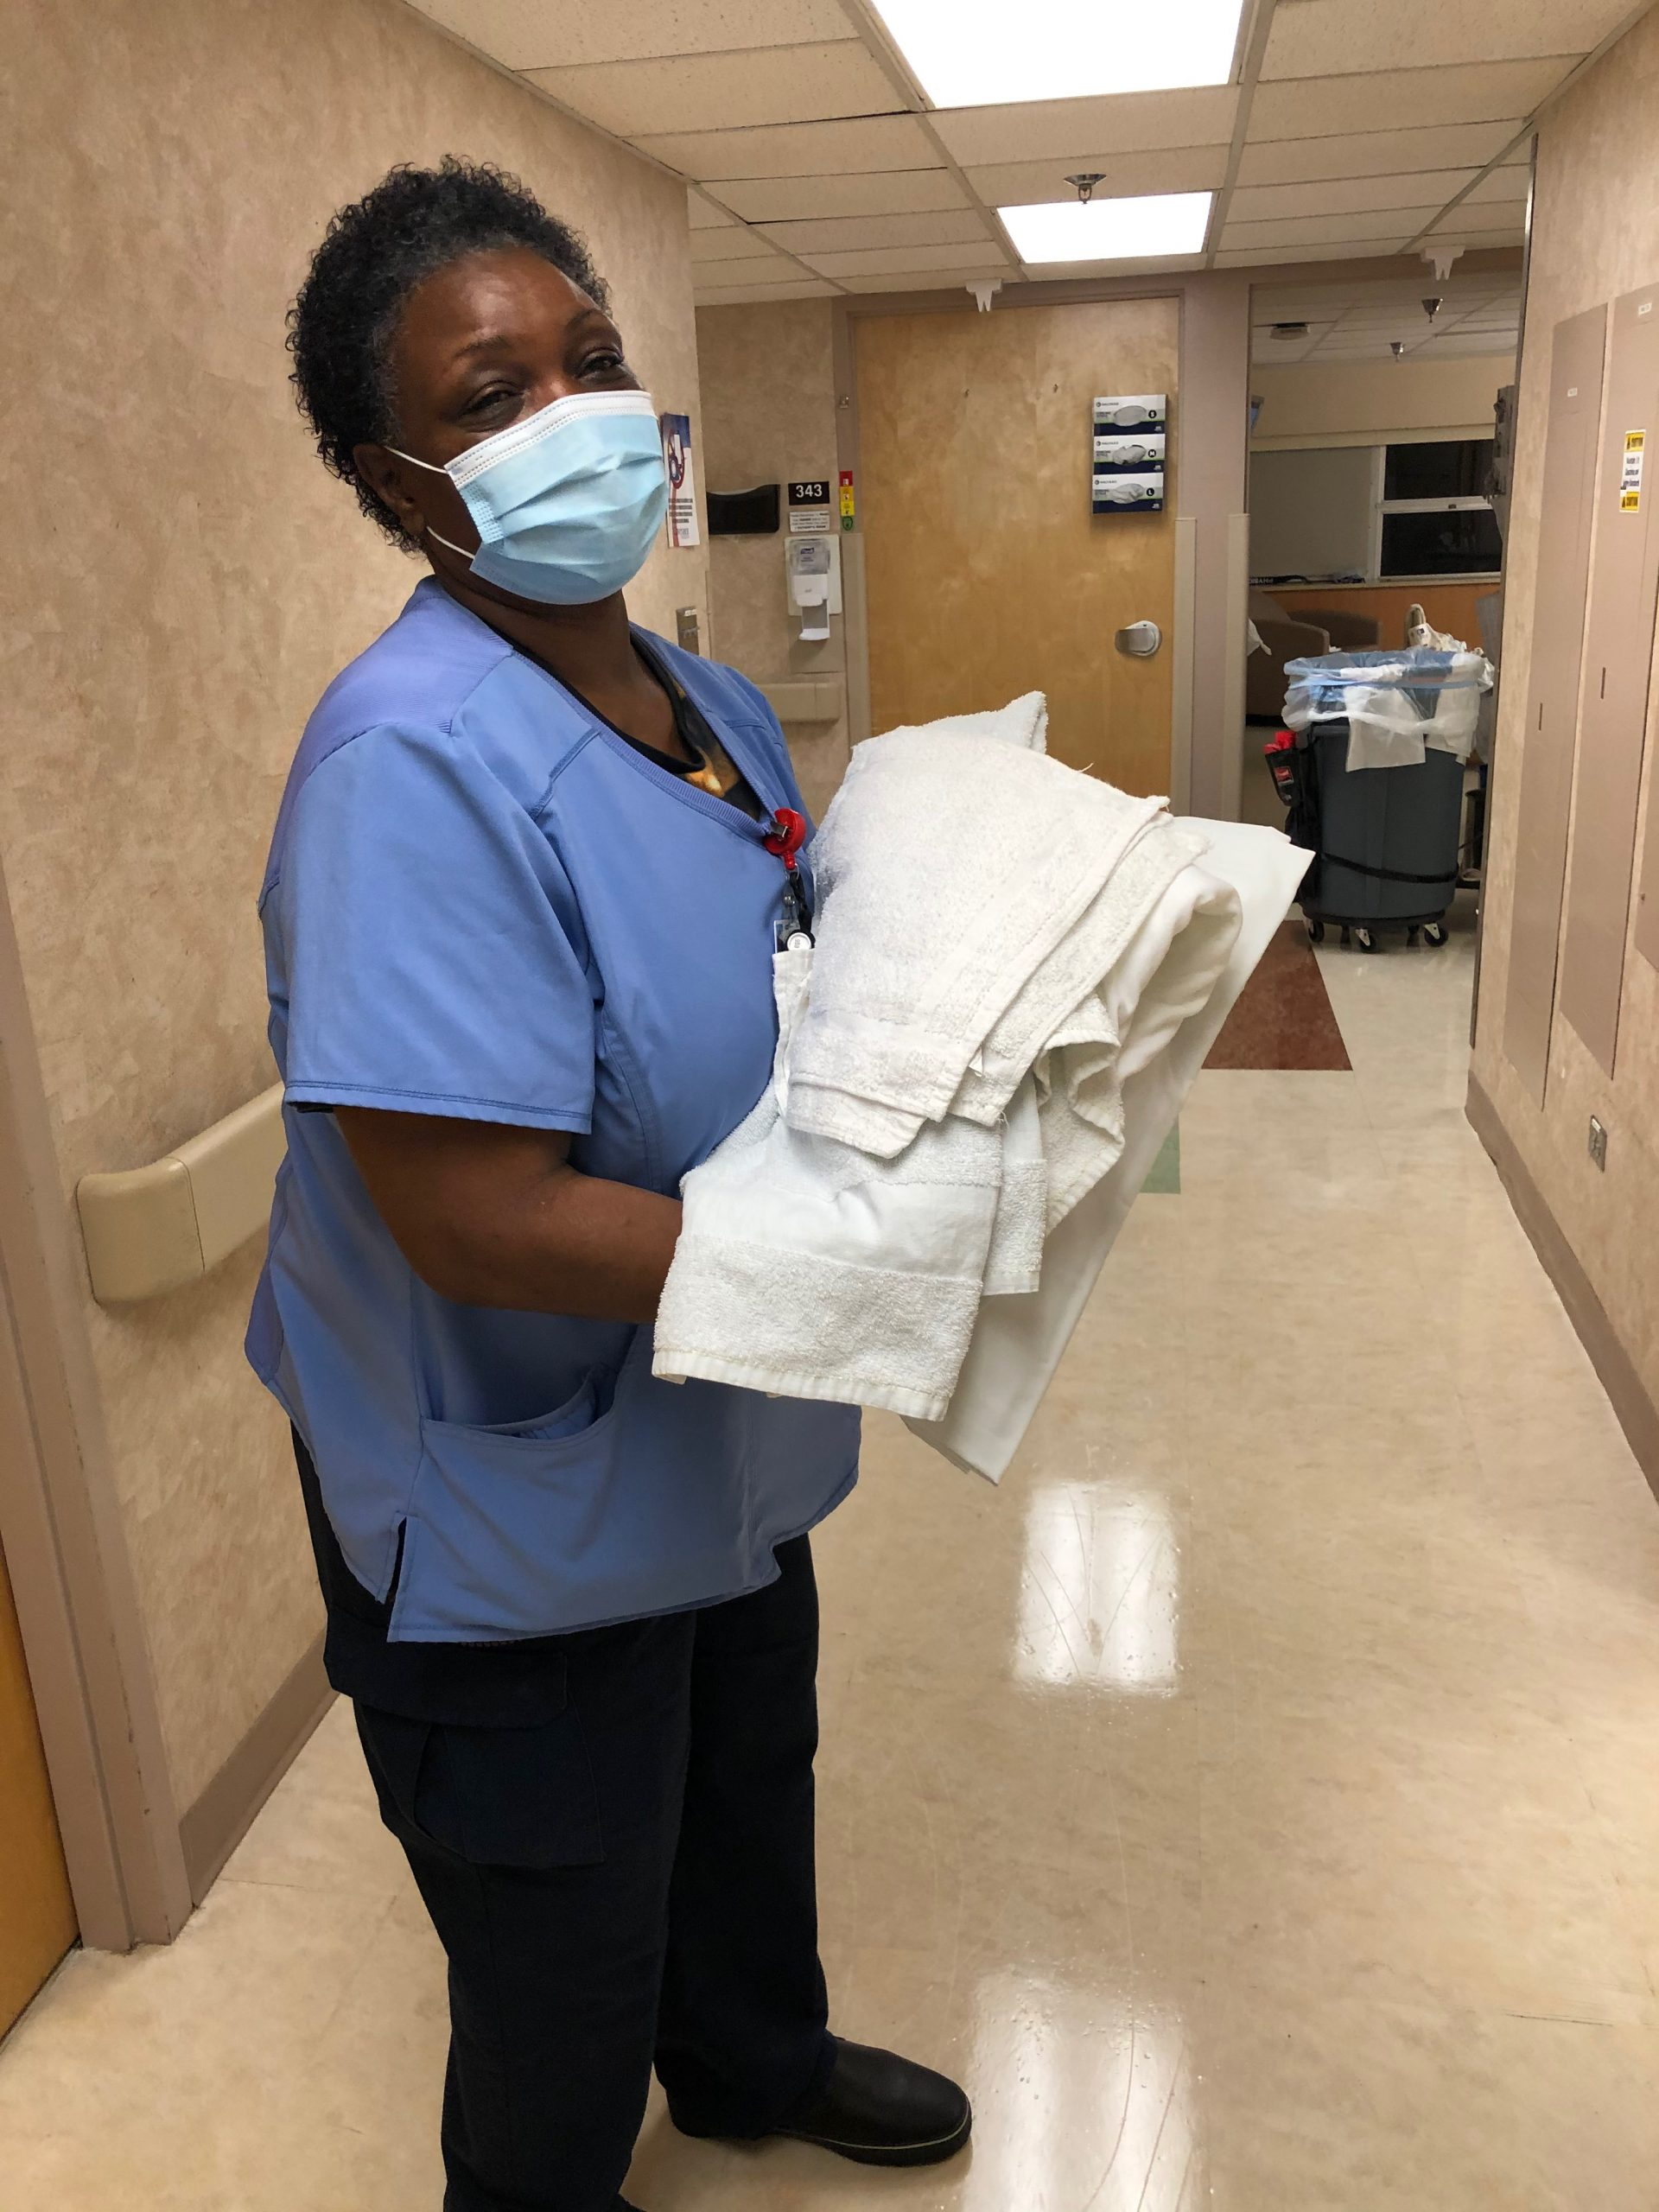 Housekeeper Carrying Linens at Fort Sanders Regional Medical Center